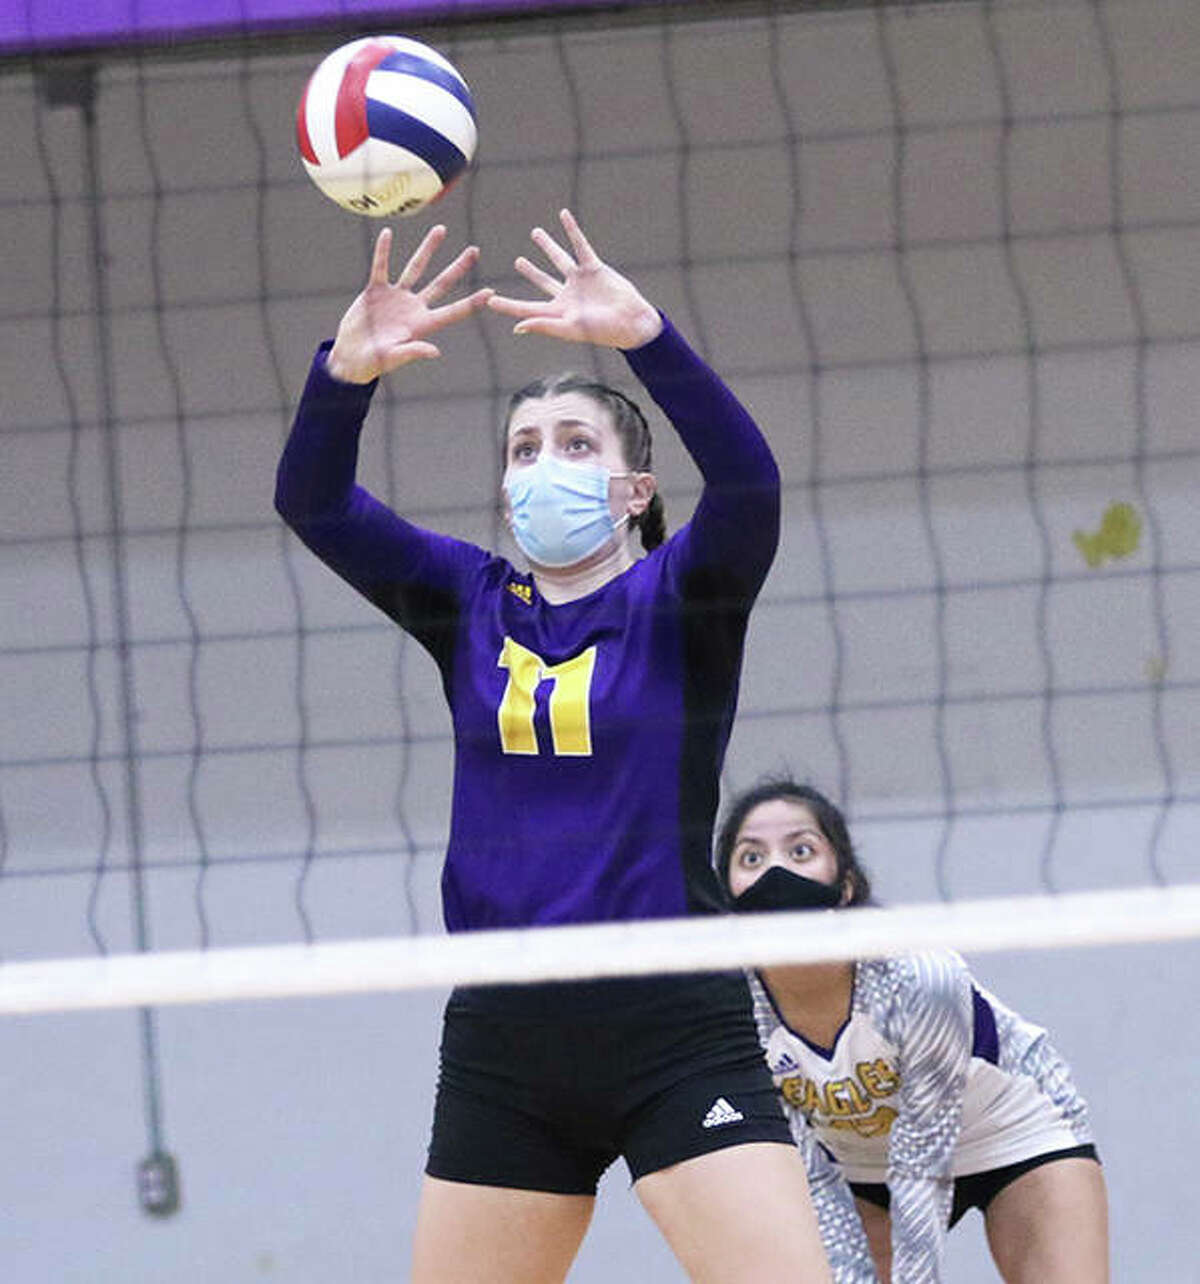 Jackie Woelfel was a standout in volleyball, basketball and track at Civic Memorial. She will learn a fourth sport, rowing, beginning Monday at Kansas.